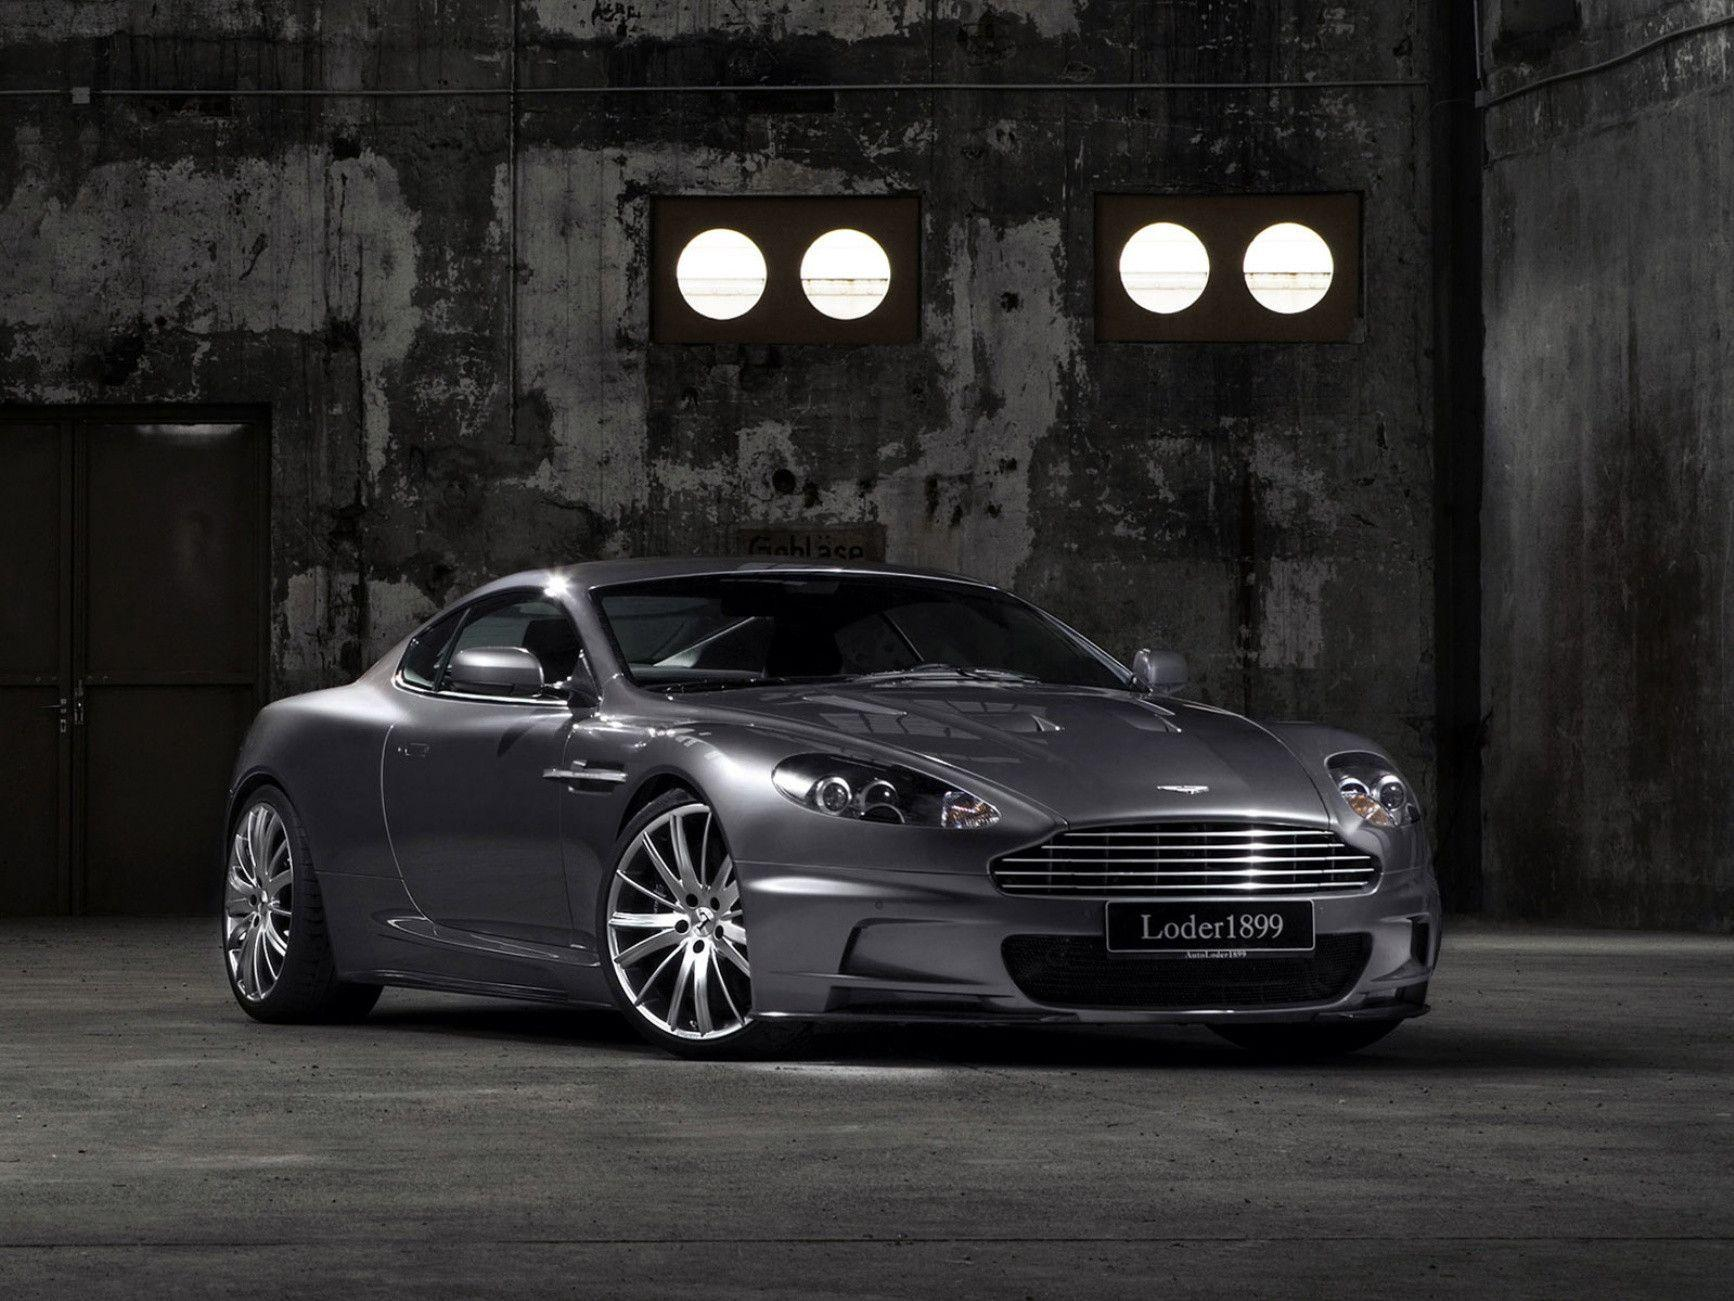 Aston Martin Dbs Wallpapers Auto Electrical Wiring Diagram